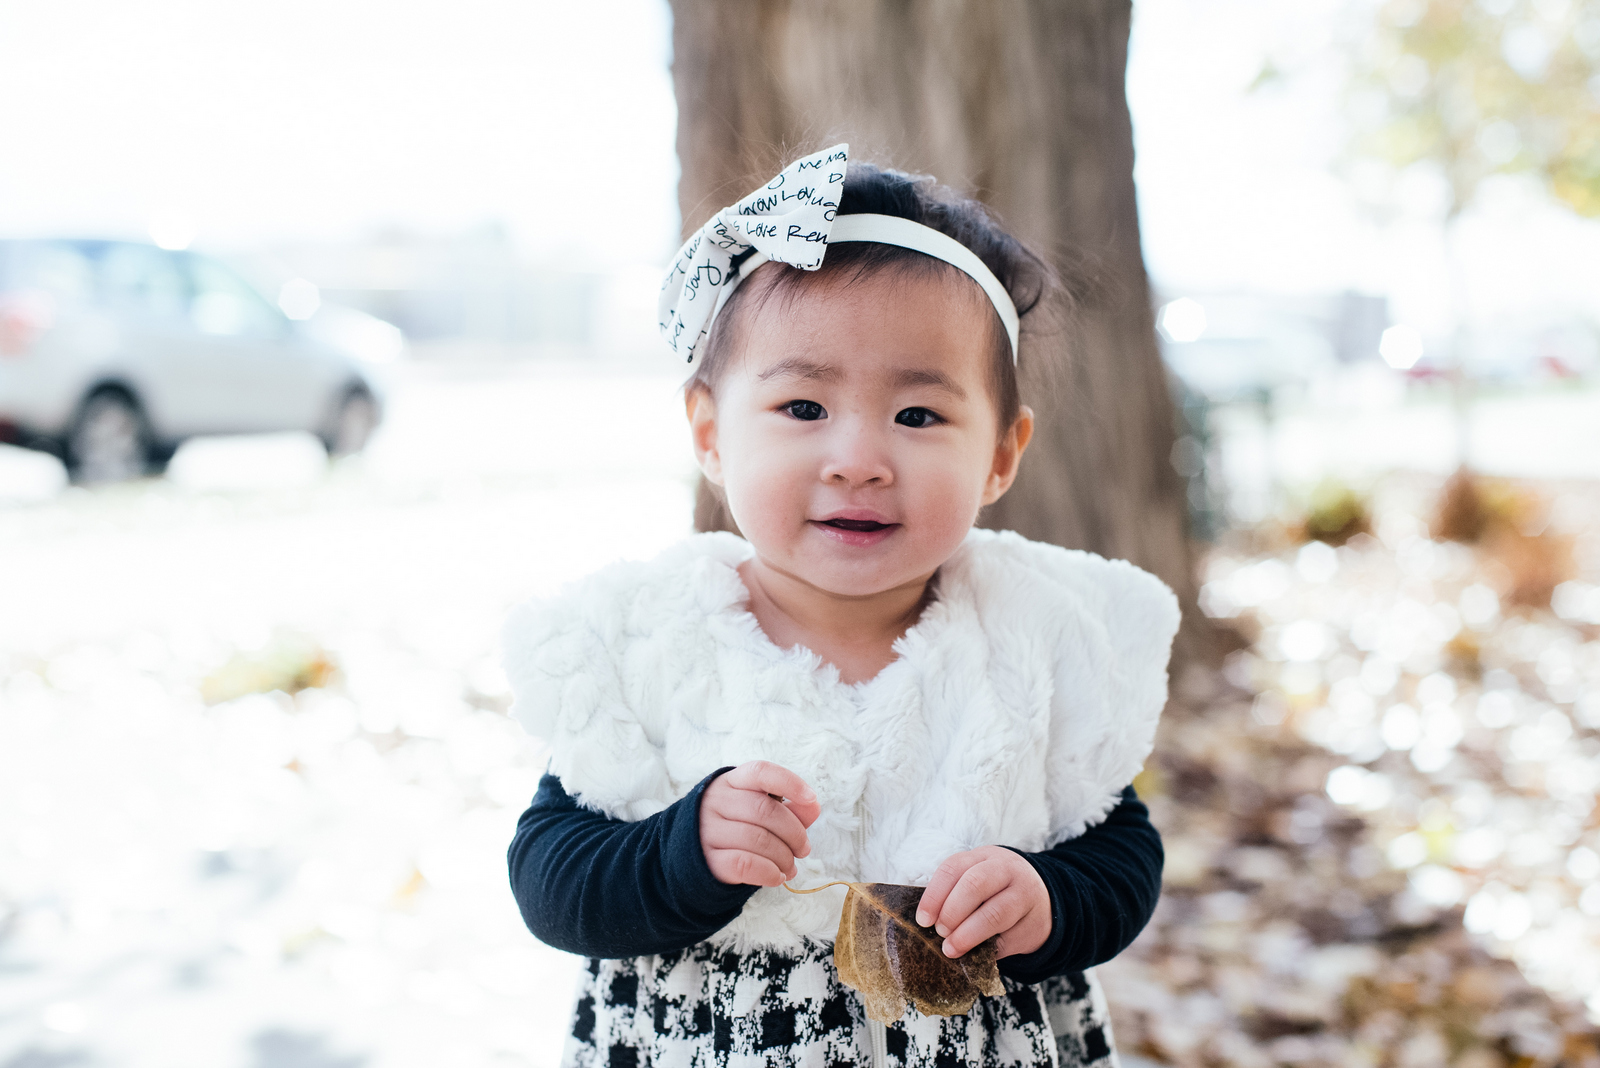 Baby girl wearing Little Cans headband